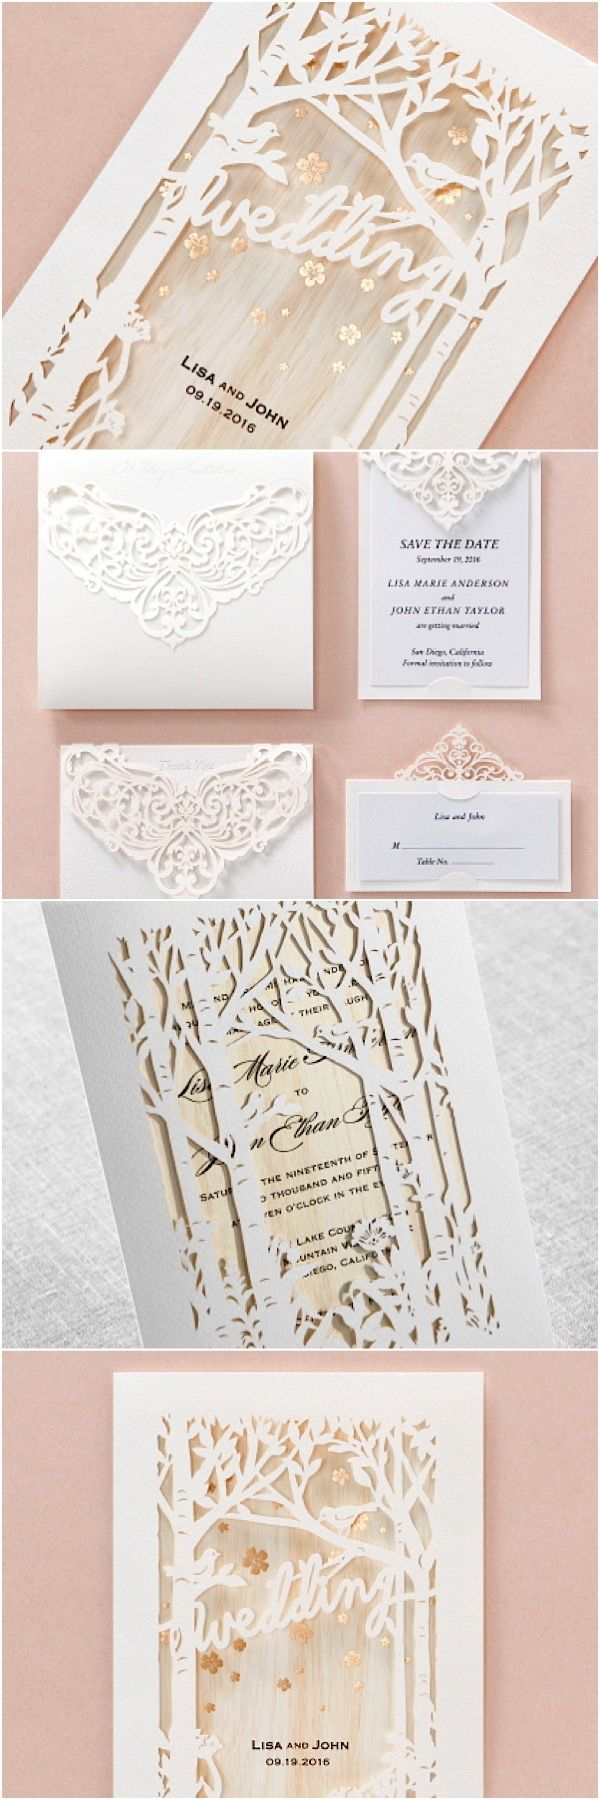 Chic and unique wedding invitations from Bweddinginvitations